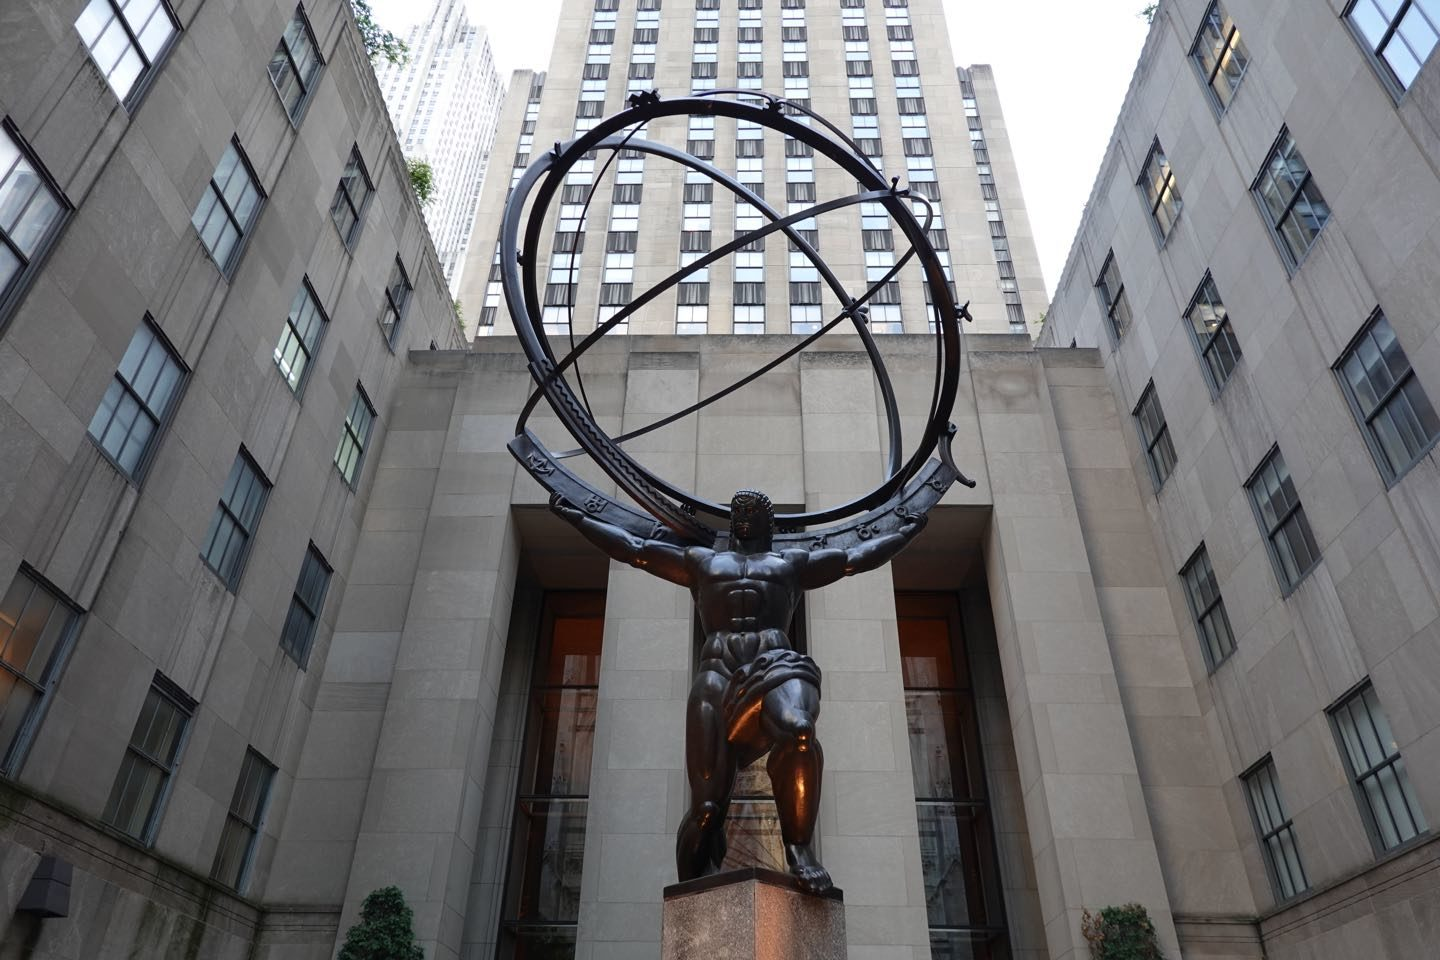 Atlas. An icon of many tv shows and movies filmed in NYC.